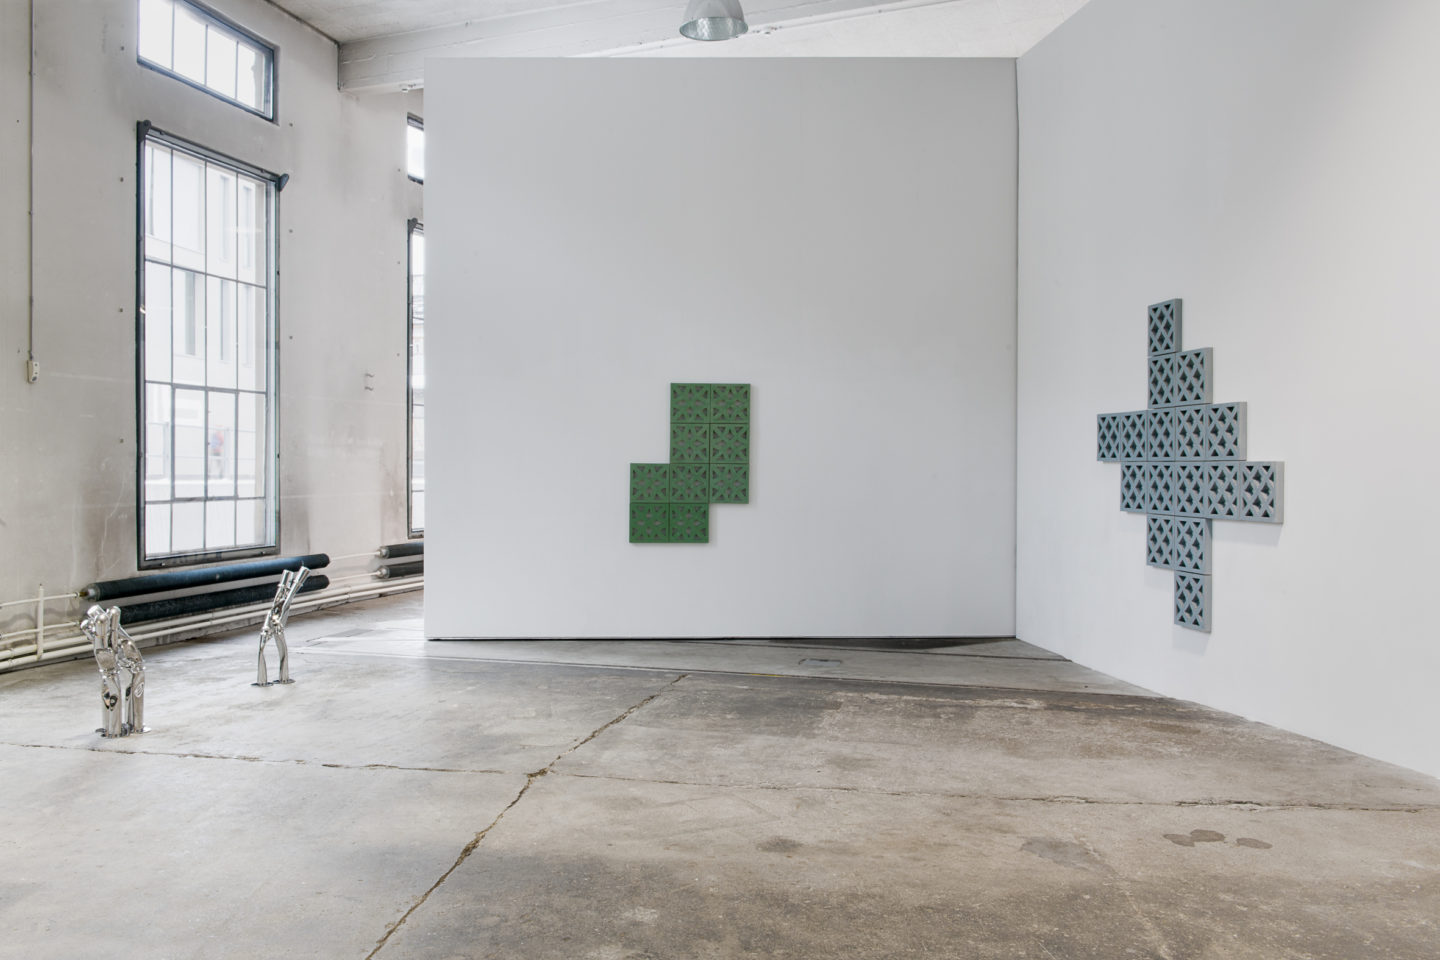 "Exhibition View Bettina Pousttchi ""Protection"" at Lokremise St.Gallen 2018 / Photo: Sebastian Stadler"